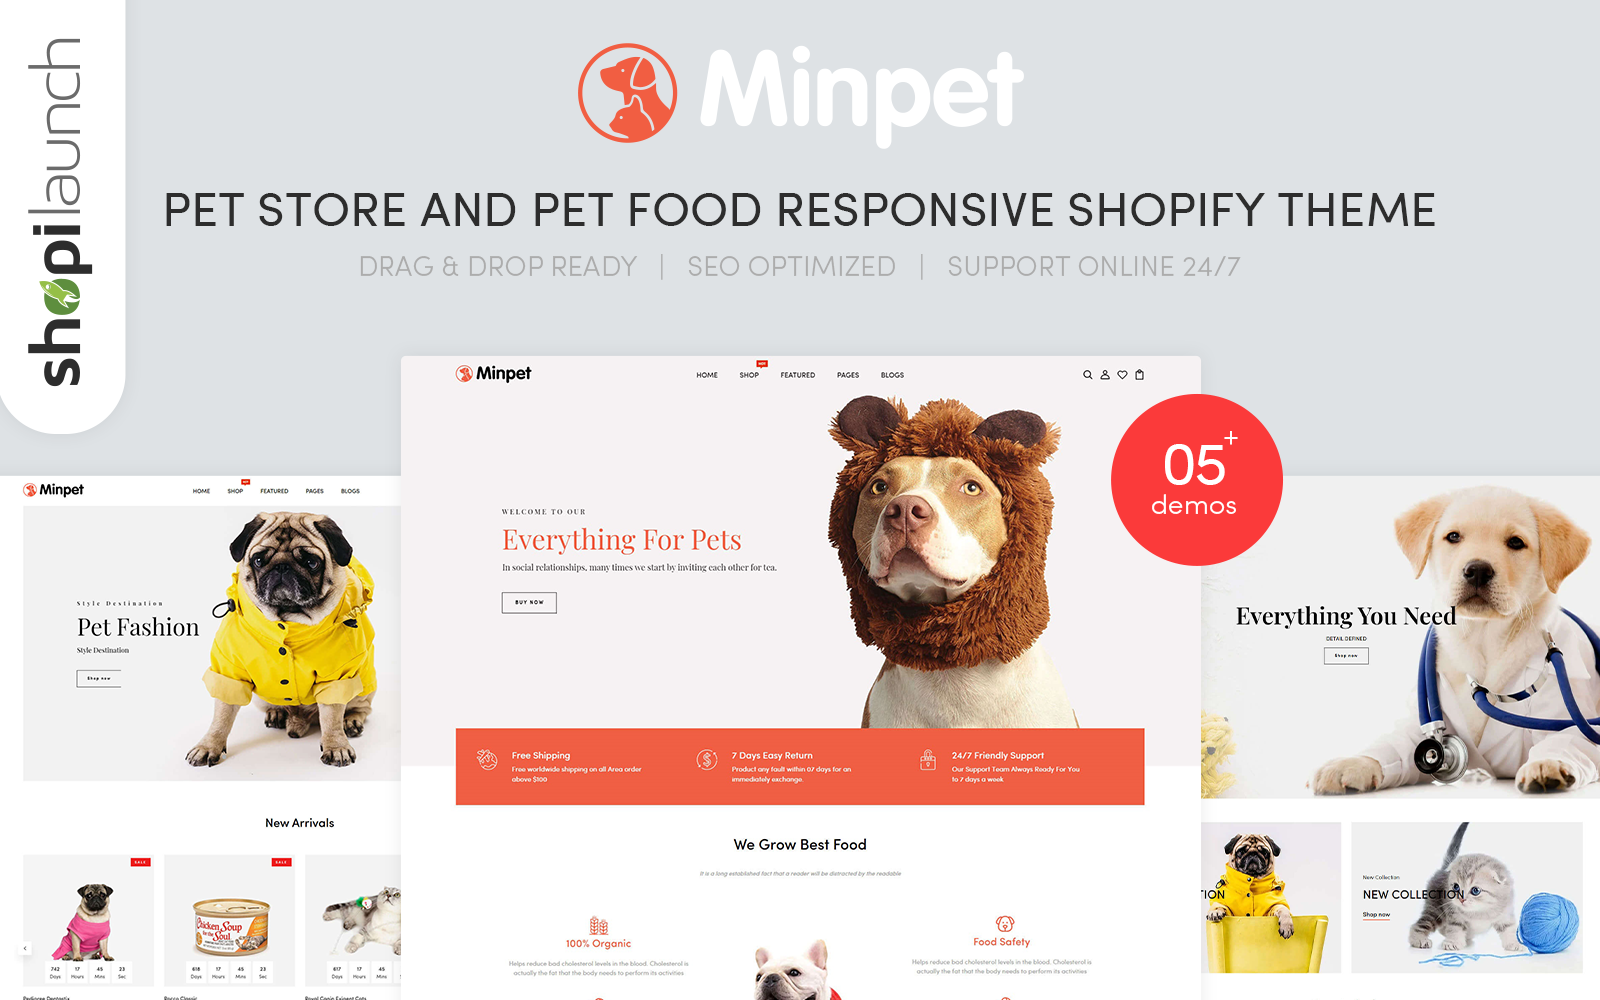 Minpet - Pet Store and Pet Food Responsive Shopify Theme